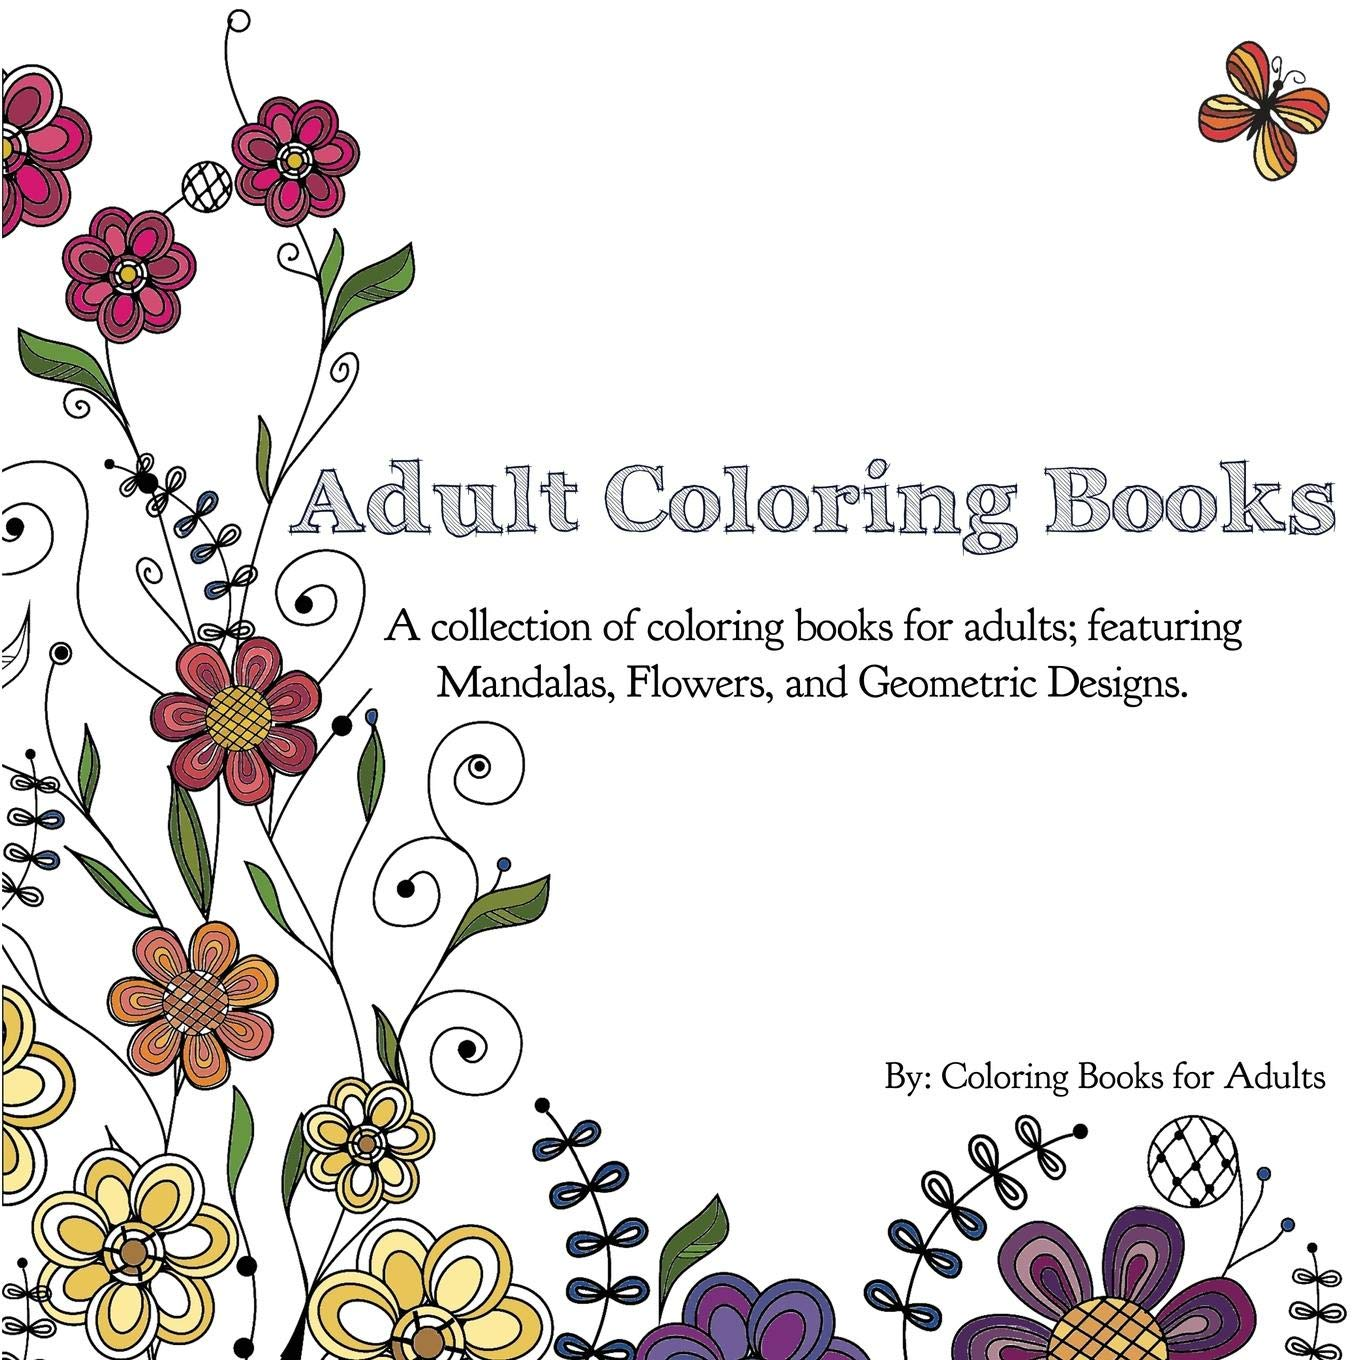 - Amazon.com: Adult Coloring Books: A Collection Of Coloring Books